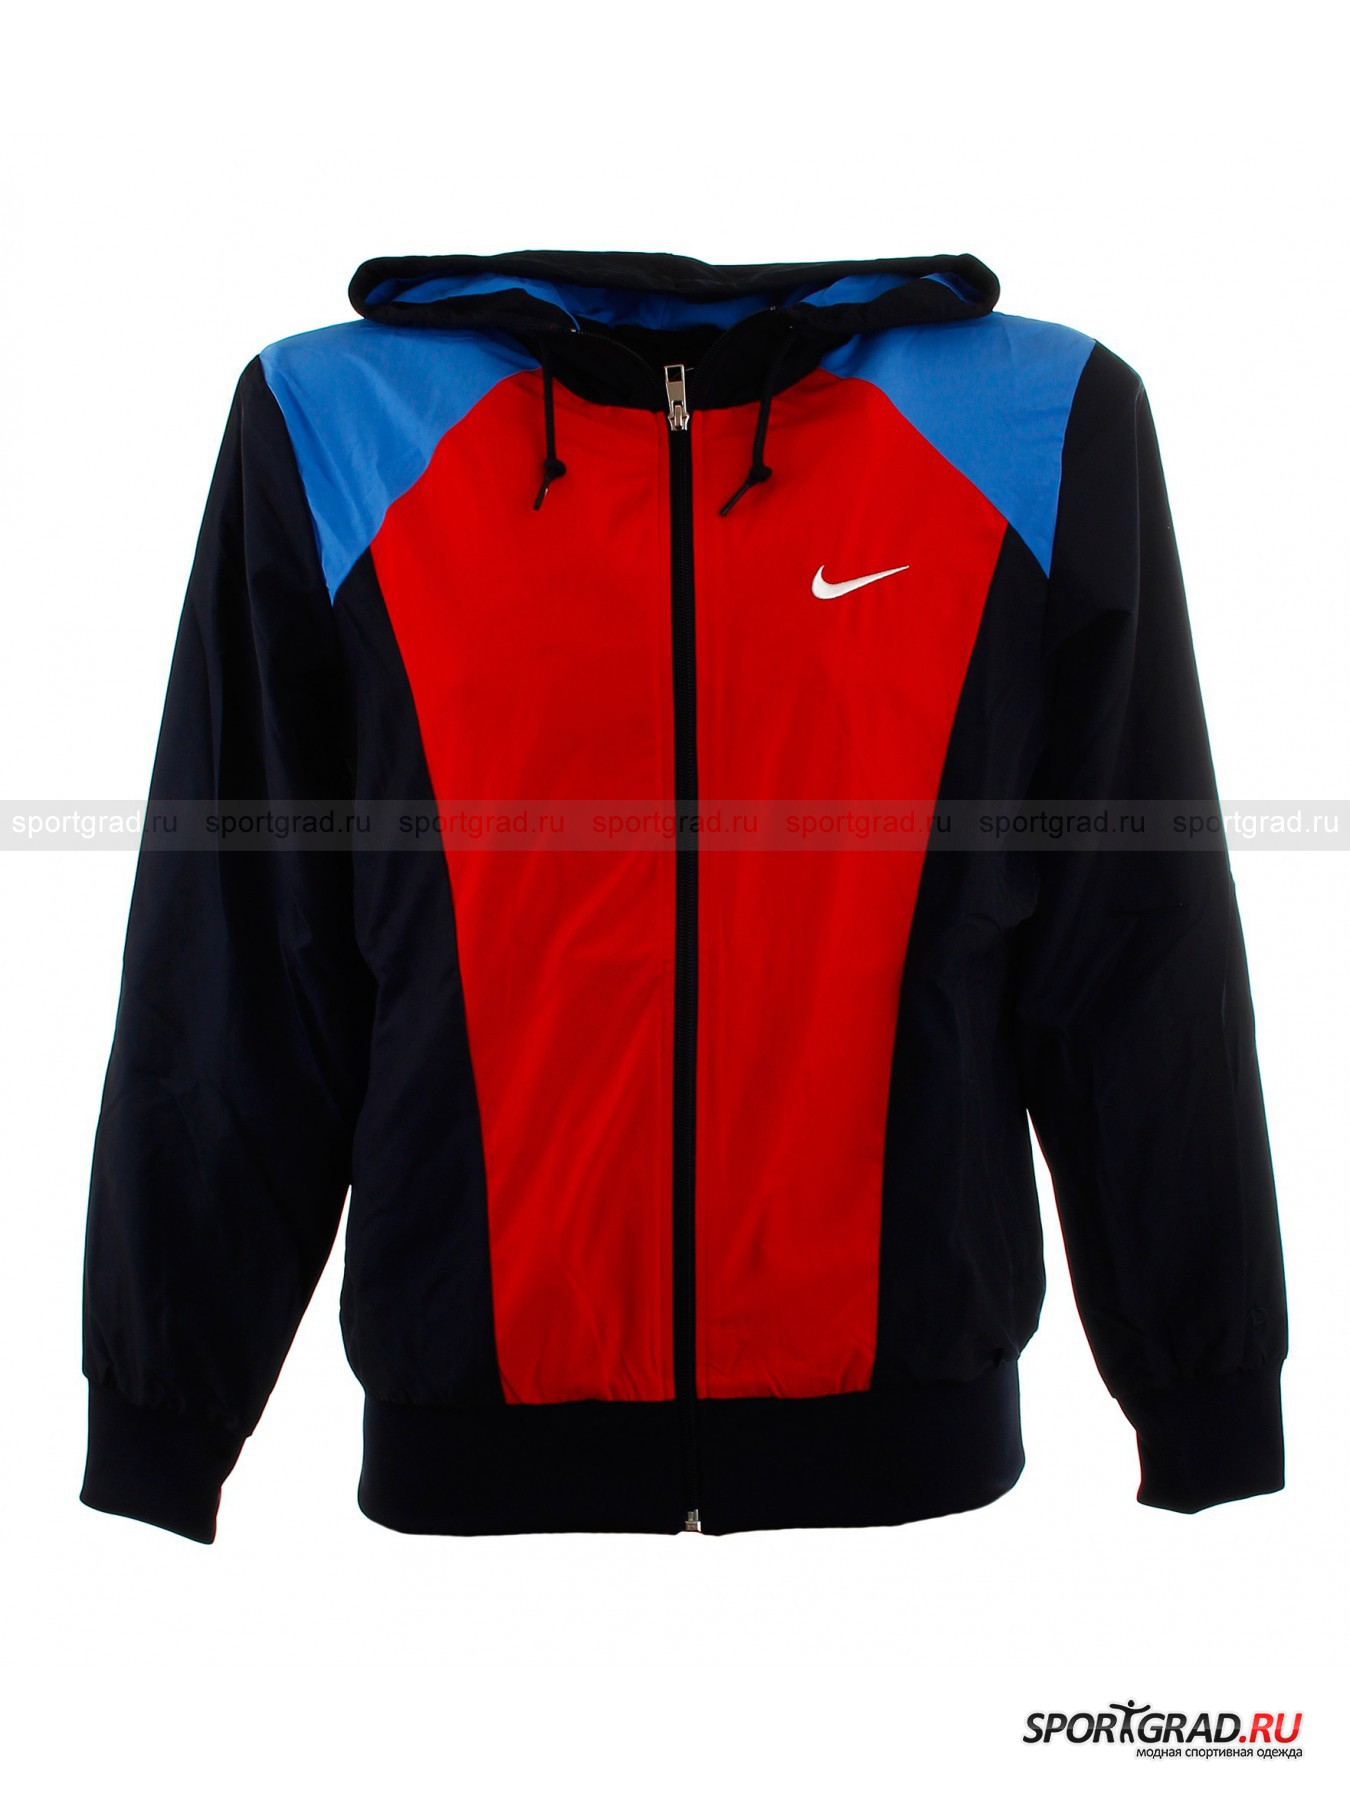 Ветровка муж AD SPRINT JACKET NIKE